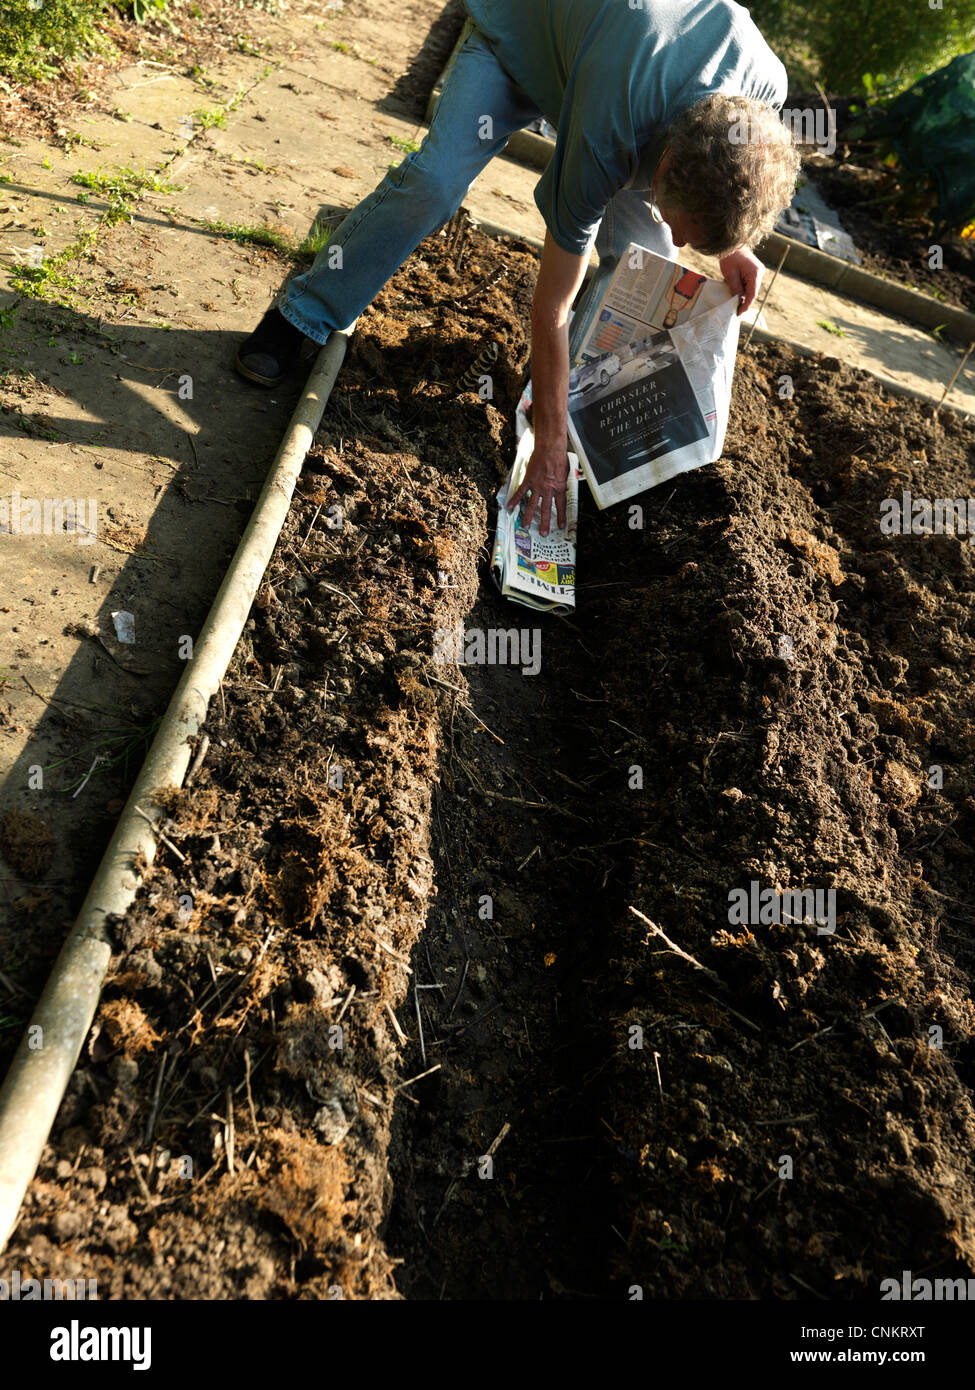 Man Lining Trench With Newspaper For Planting Potatoes Surrey England - Stock Image